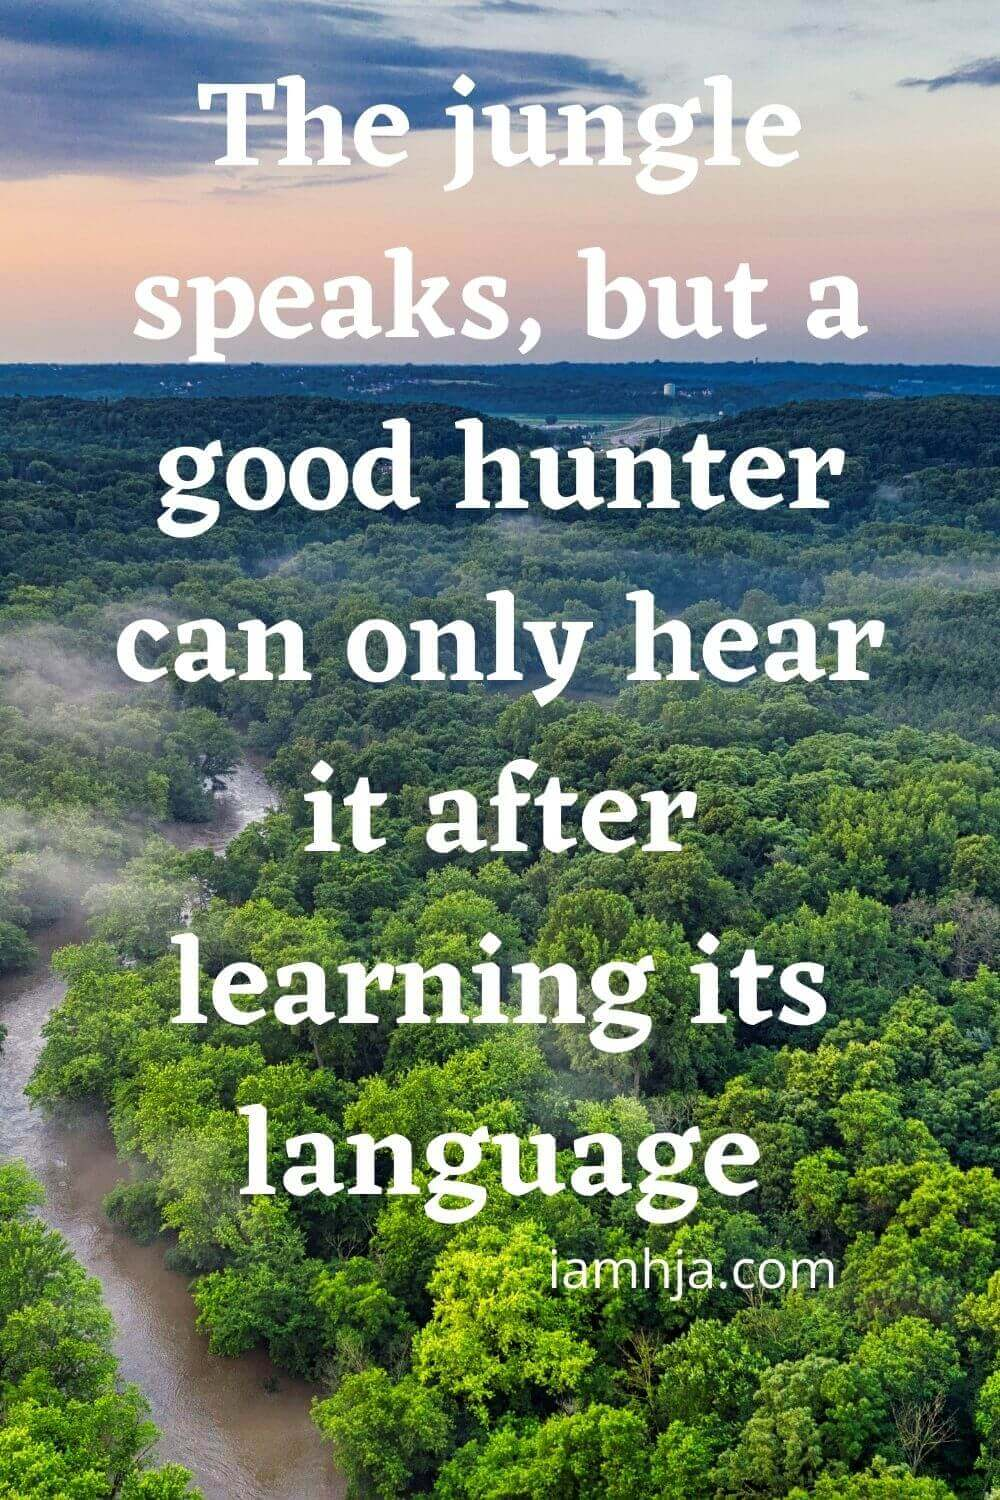 The jungle speaks, but a good hunter can only hear it after learning its language